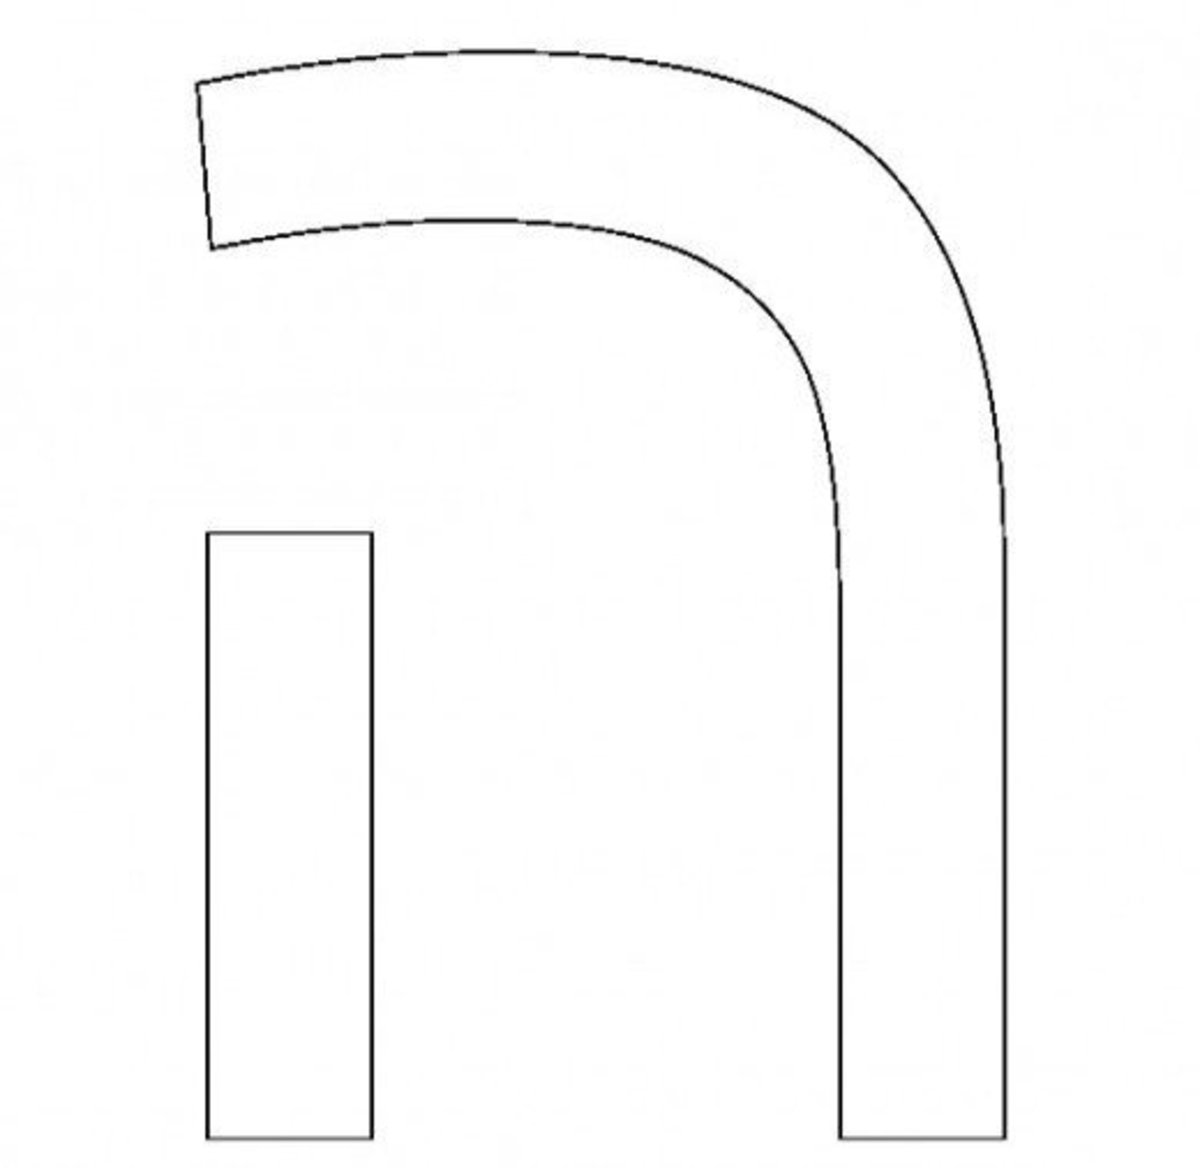 Hebrew Letter Hey Coloring Page - דף צביעה אוֹת הא